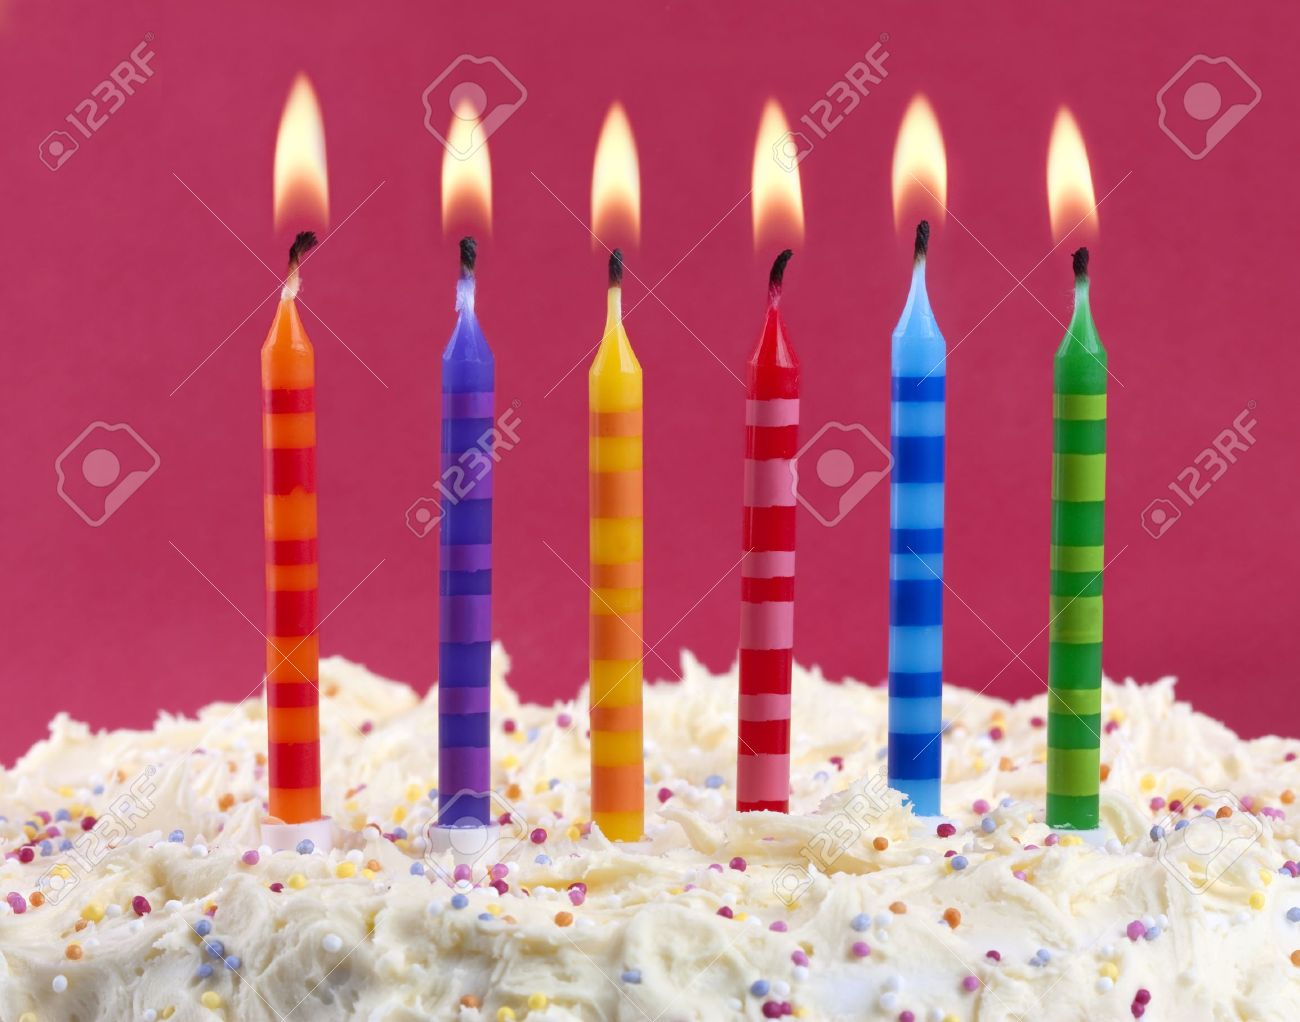 birthday cake with 6 coloured candles on a red background Stock Photo - 8983638